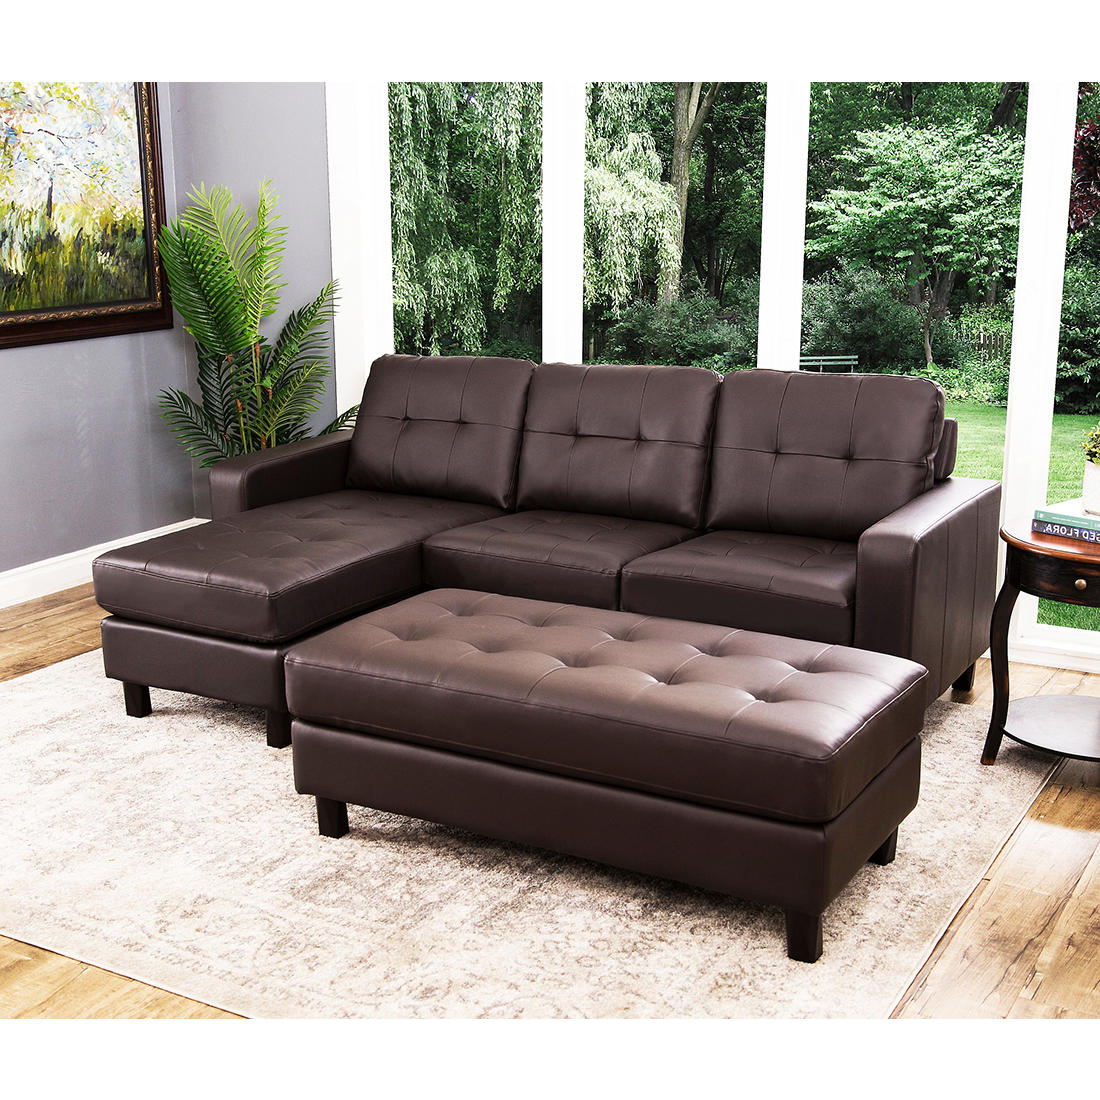 Admirable Abbyson Living Taylor Reversible Sectional And Ottoman Espresso Brown Ncnpc Chair Design For Home Ncnpcorg